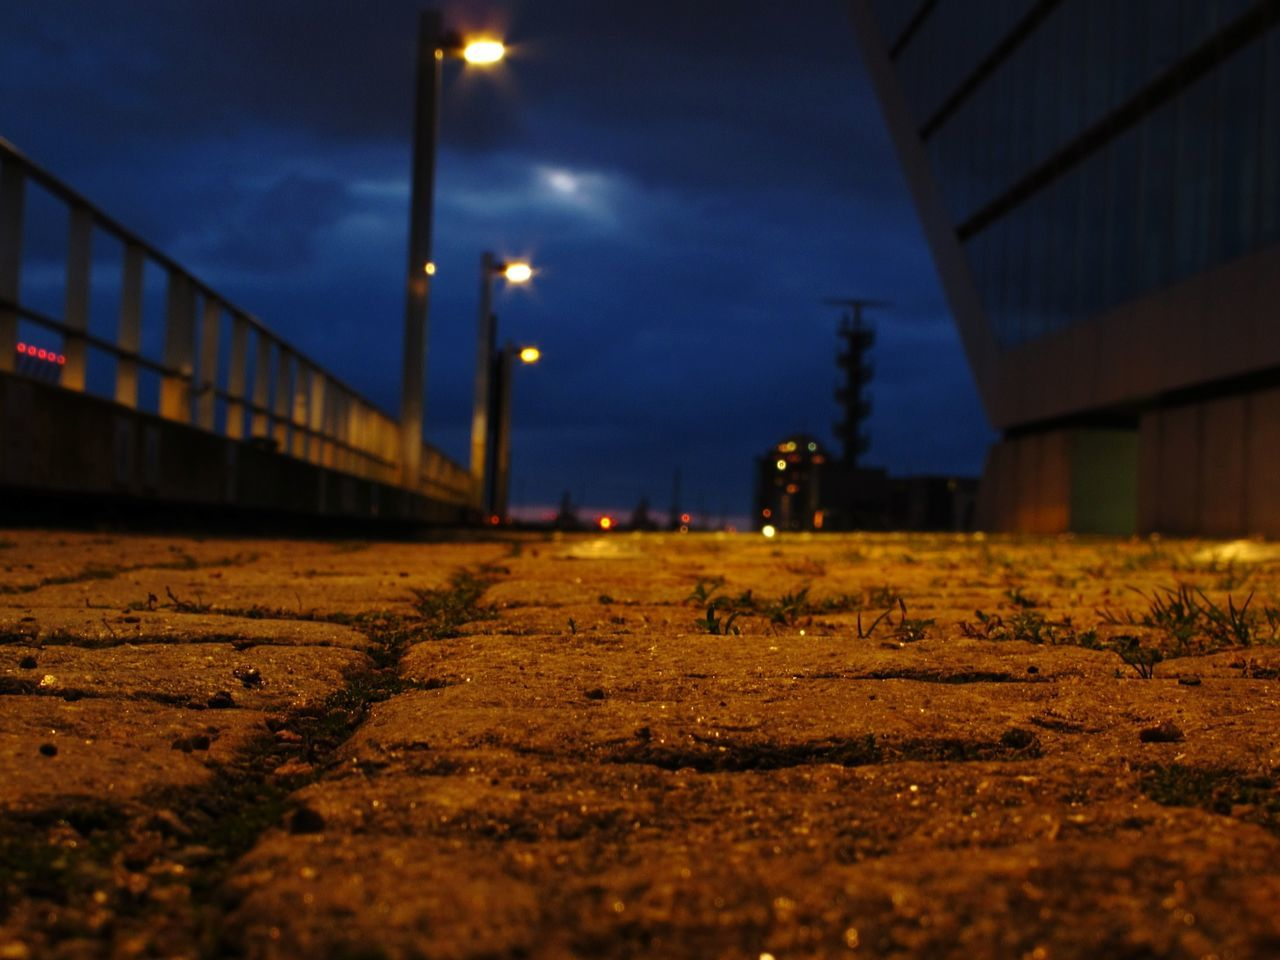 surface level, night, illuminated, transportation, outdoors, sky, no people, built structure, architecture, nature